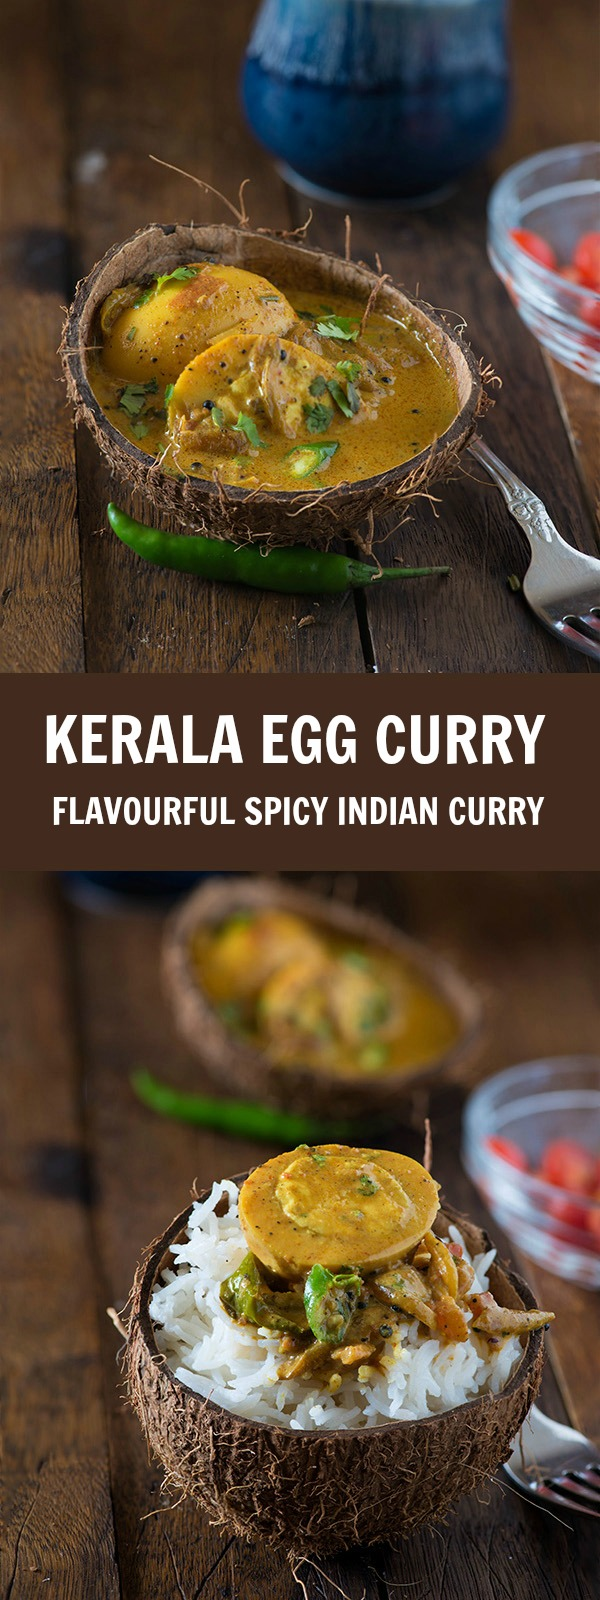 Kerala egg curry recipe is quick, easy and spicy Kerala style egg curry cooked in coconut milk. This is also known as Nadan Mutta curry. This recipe is an authentic hotel style Kerala egg curry which is served with Chapati, rice, Malabar parotta, Idiyappam, and appam. It is a low carb glutenfree egg curry. In Kerala egg curry boiled eggs are cooked in a typical Kerala style coconut milk gravy which is very spicy. The flavors of spices in the gravy are beautifully balanced with the sweetness of coconut milk. It's easy and simple curry that can be served as delicious side dish.